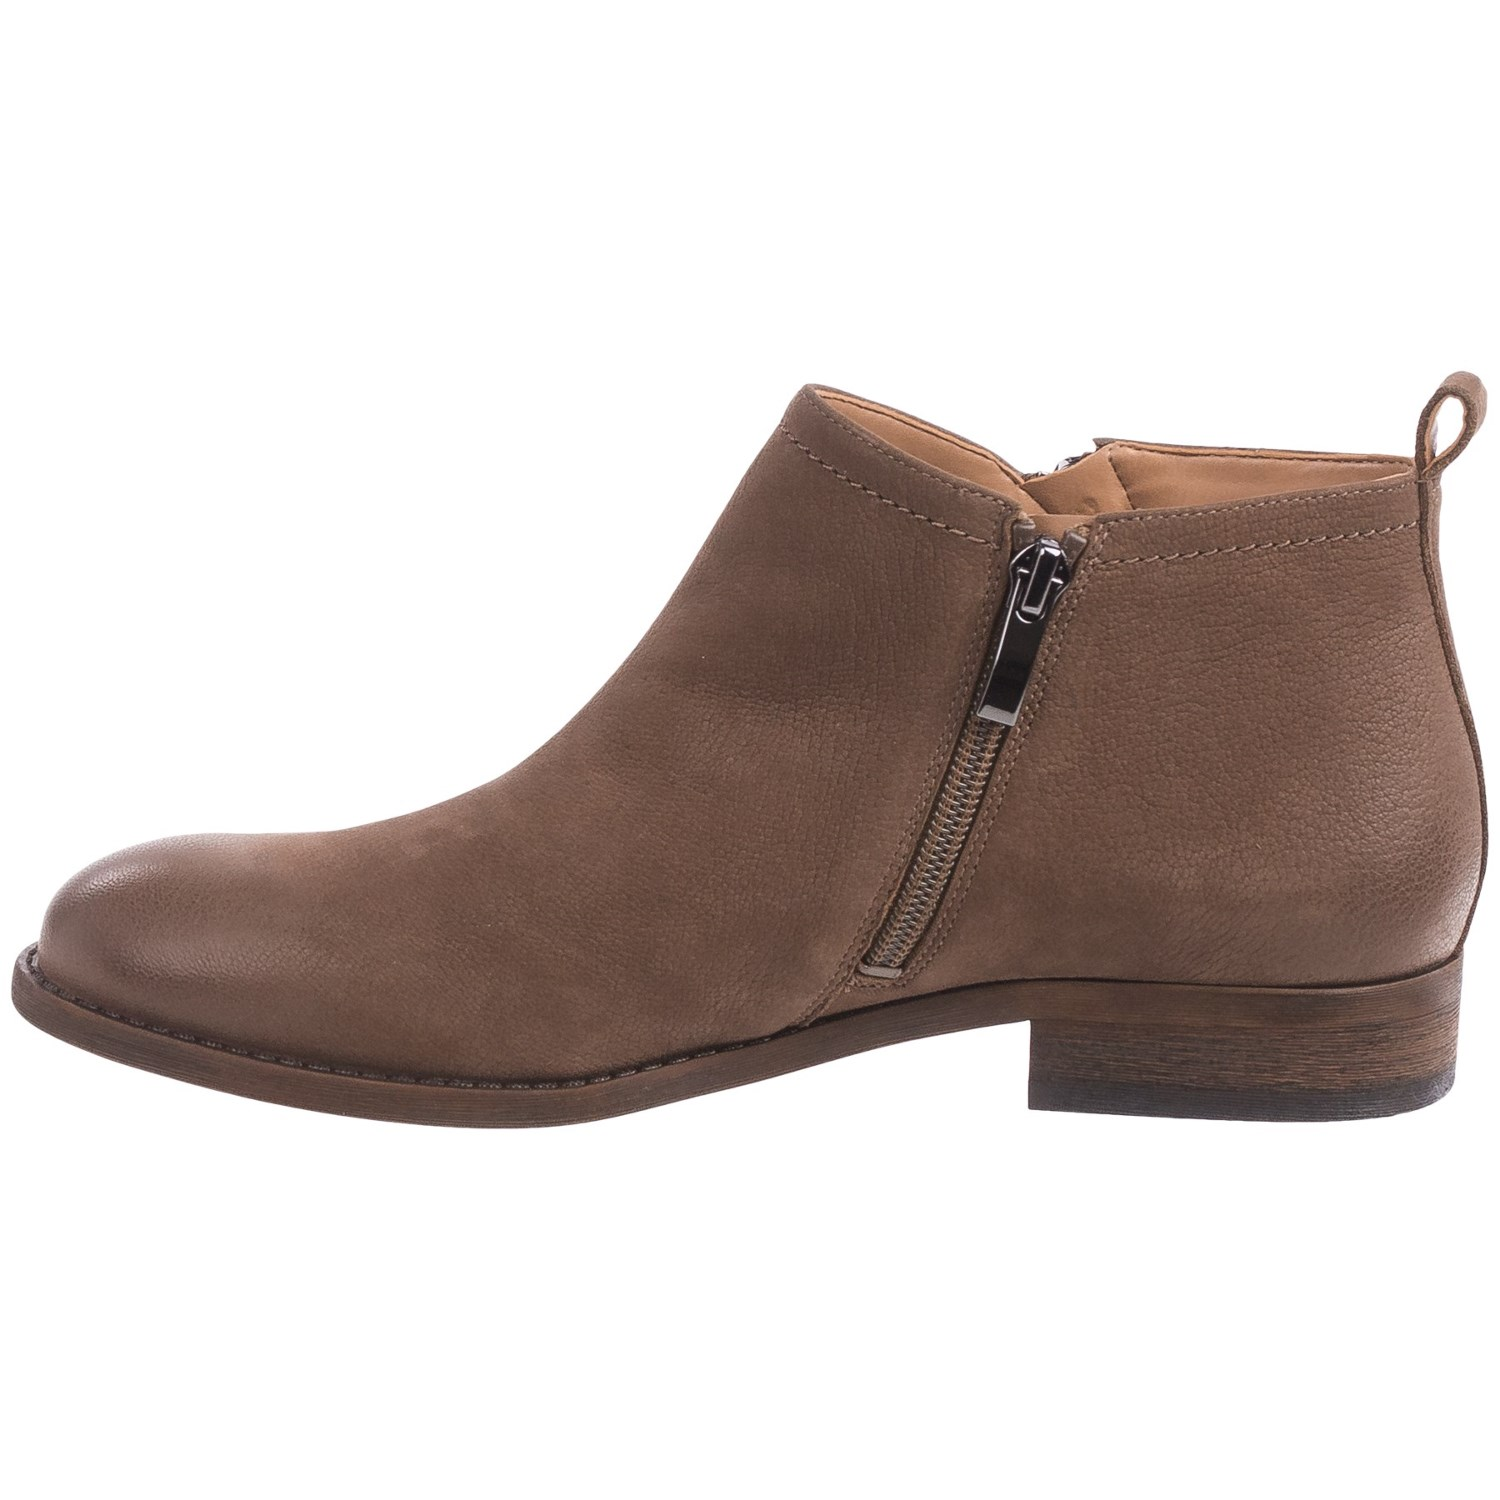 Franco Sarto Kaime Ankle Boots (For Women) - Save 64%